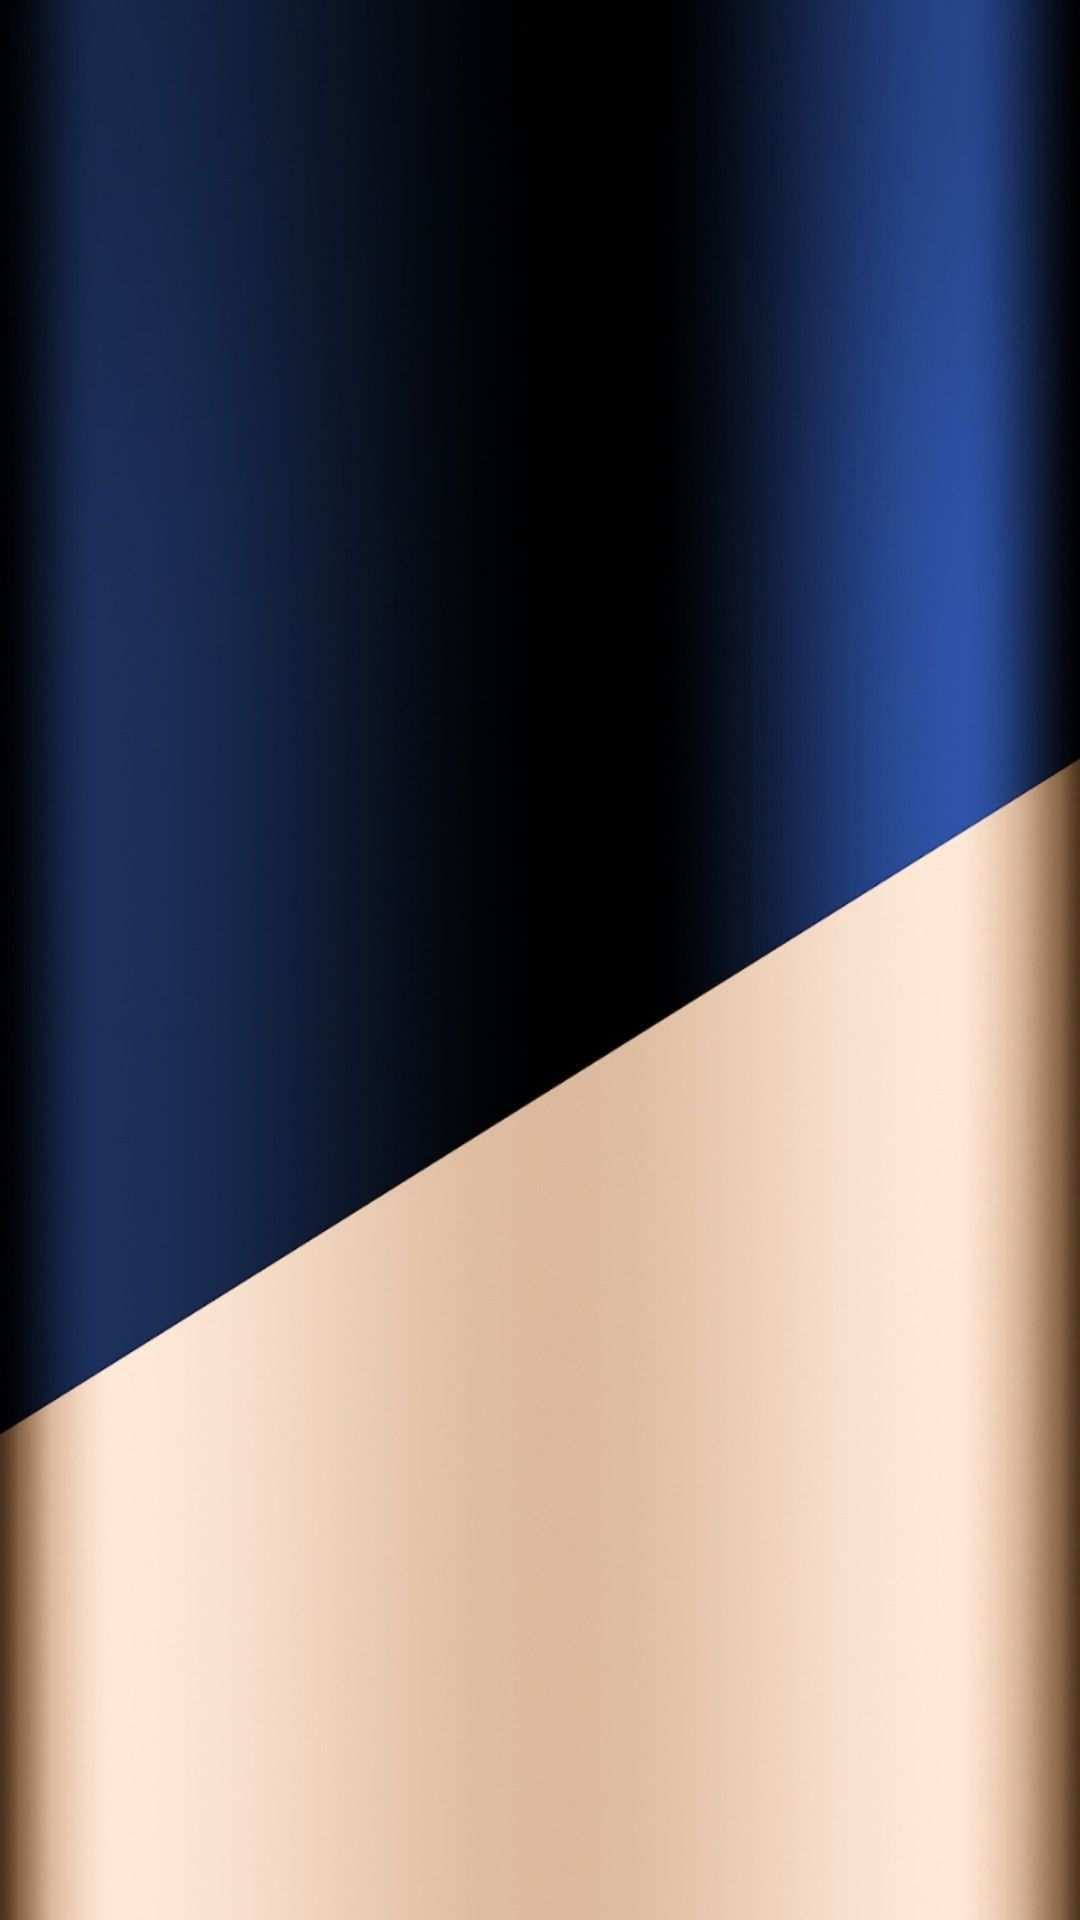 Navy Blue And Gold Wallpaper Android Download Blue And Gold Wallpaper Samsung Wallpaper Gold Wallpaper